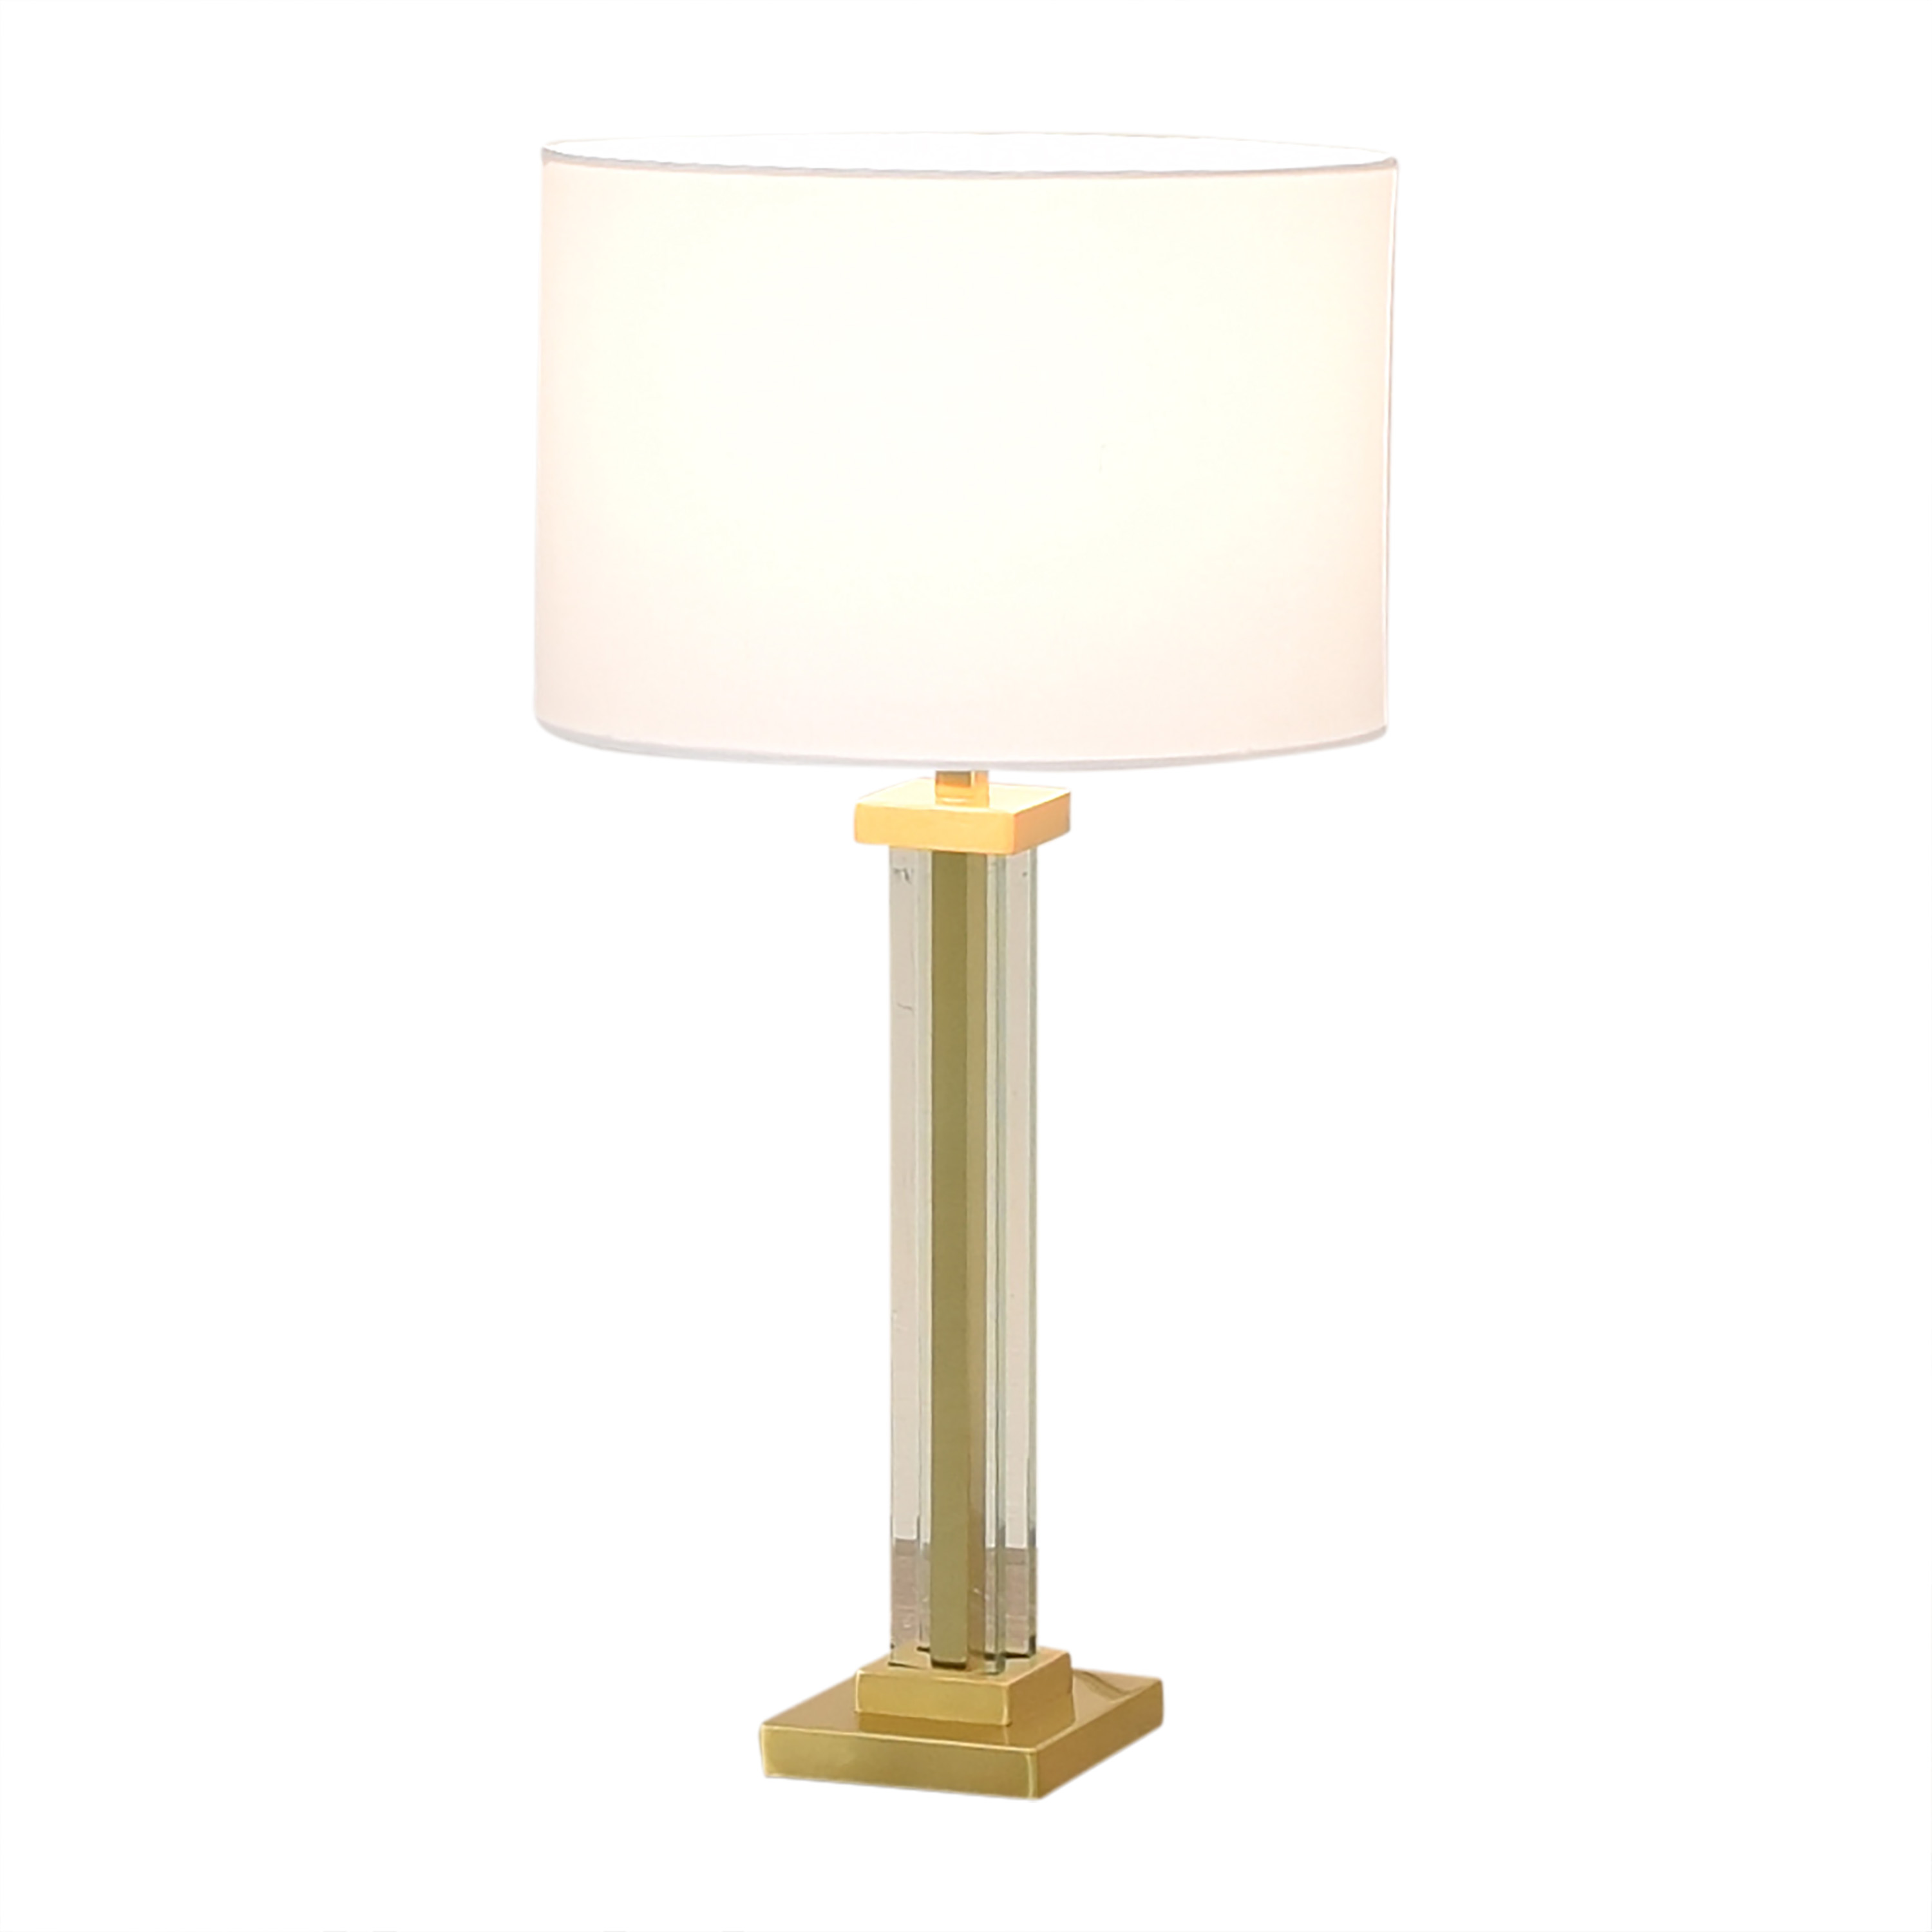 CB2 CB2 Table Lamp for sale